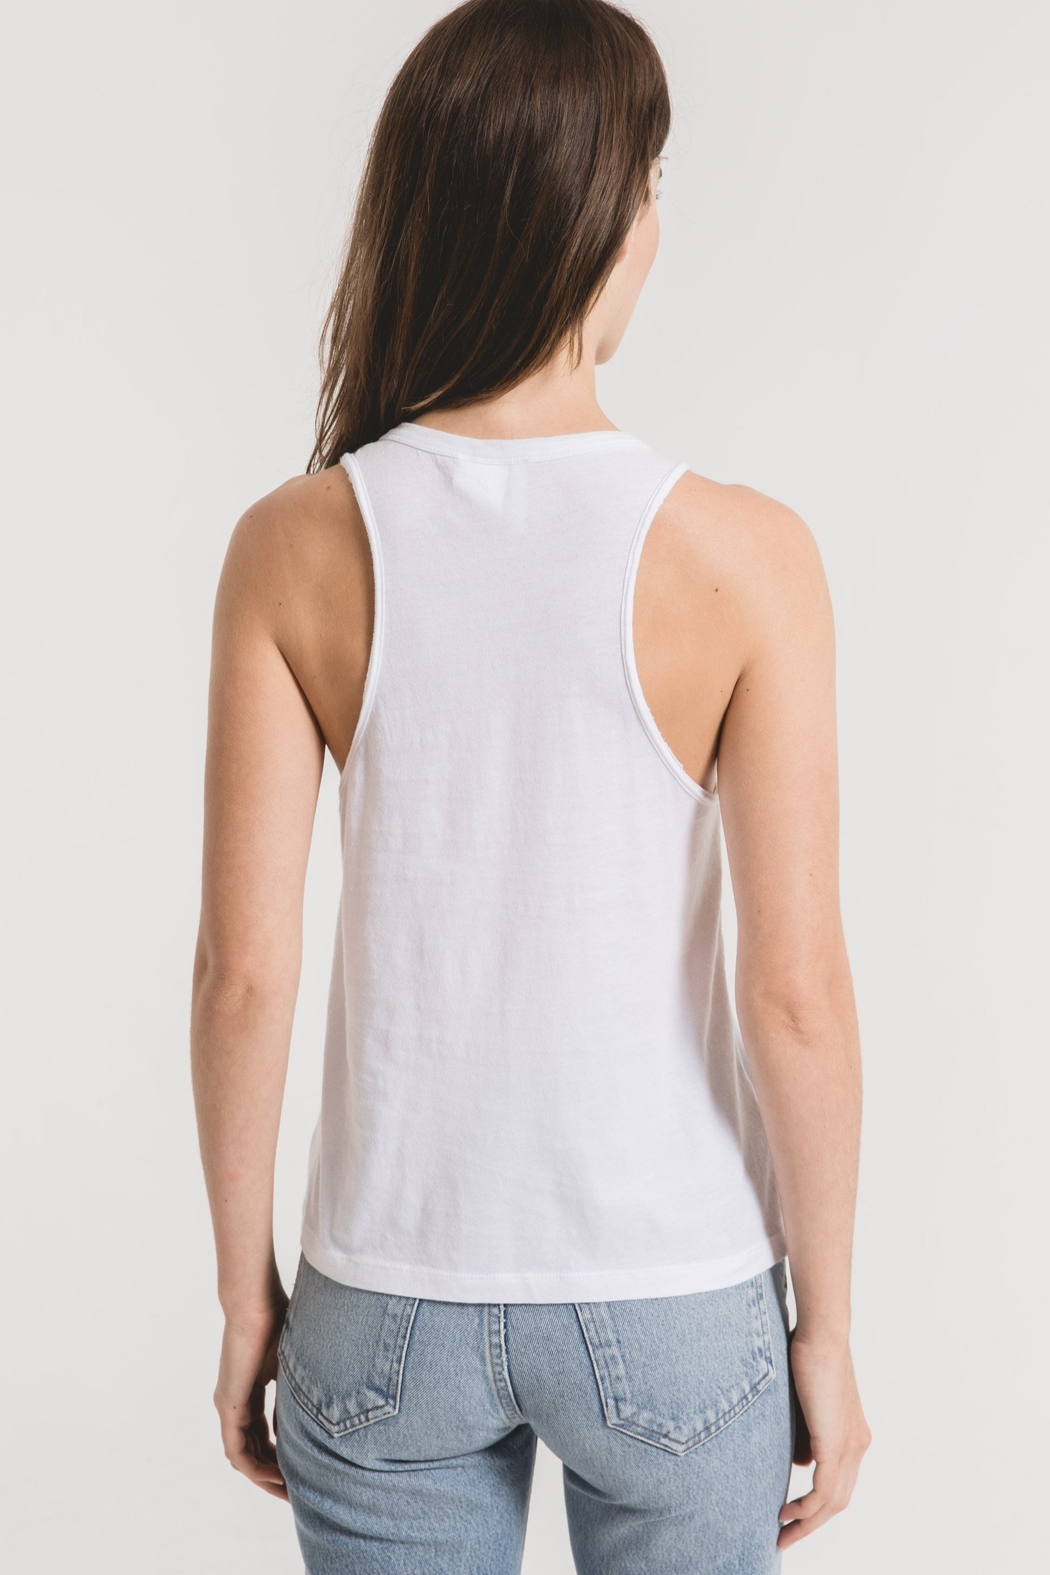 z supply Organic Cotton Muscle Tank - Back Cropped Image